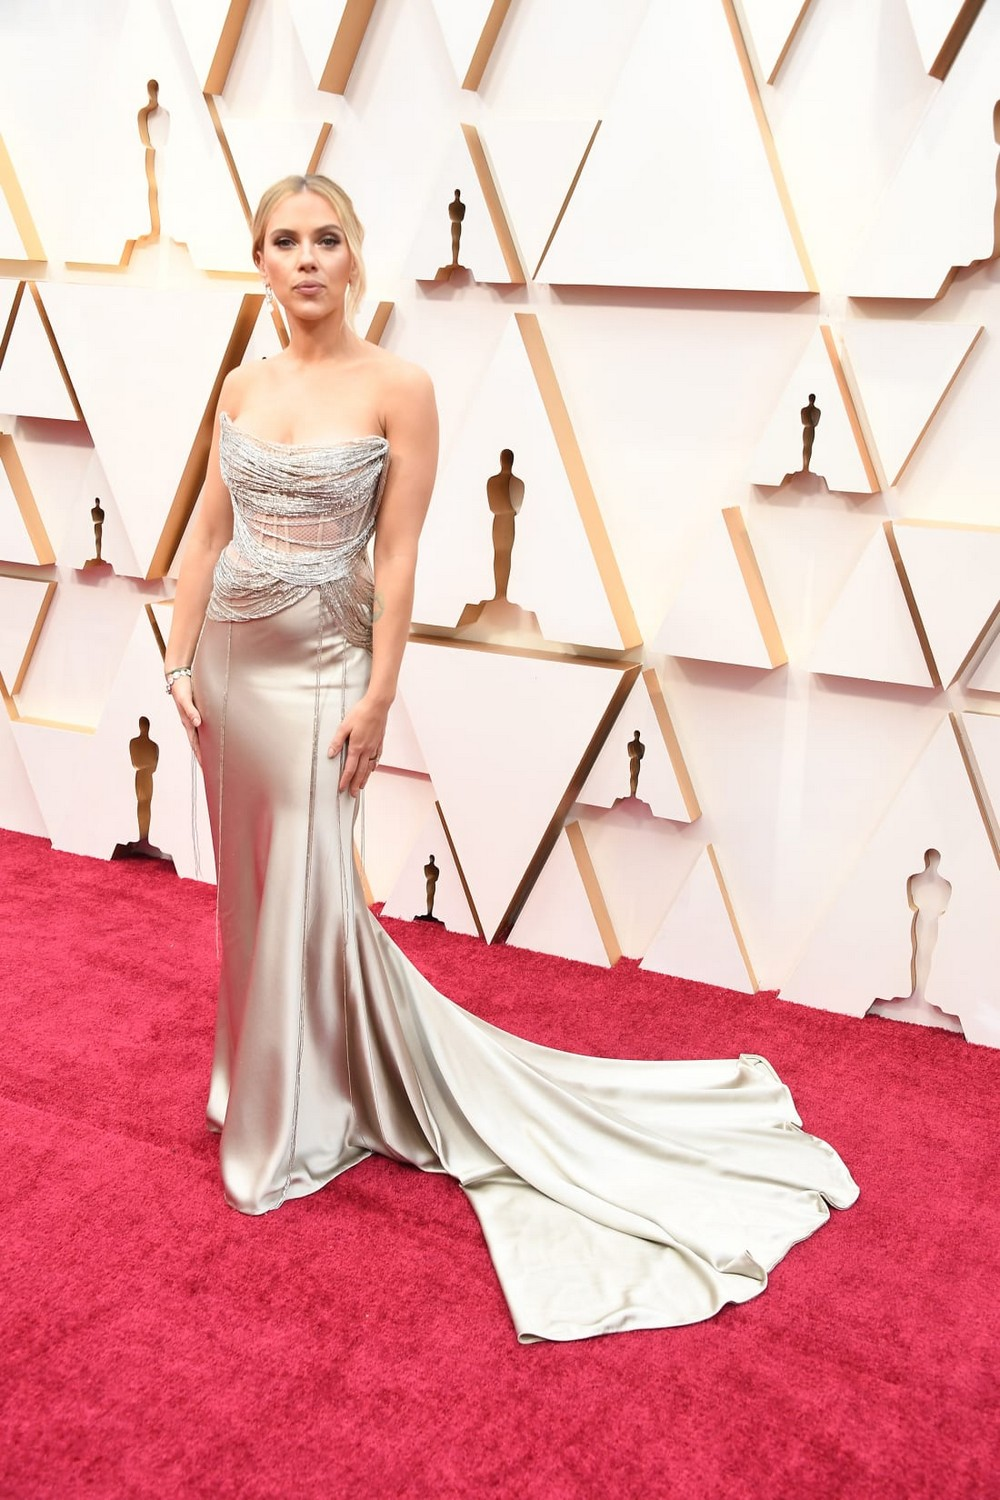 Oscars 2020 Sleeves were Certainly in Fashion at the Red Carpet 10 oscars 2020 Oscars 2020: Statement Sleeves in Fashion on the Red Carpet Oscars 2020 Sleeves were Certainly in Fashion at the Red Carpet 10